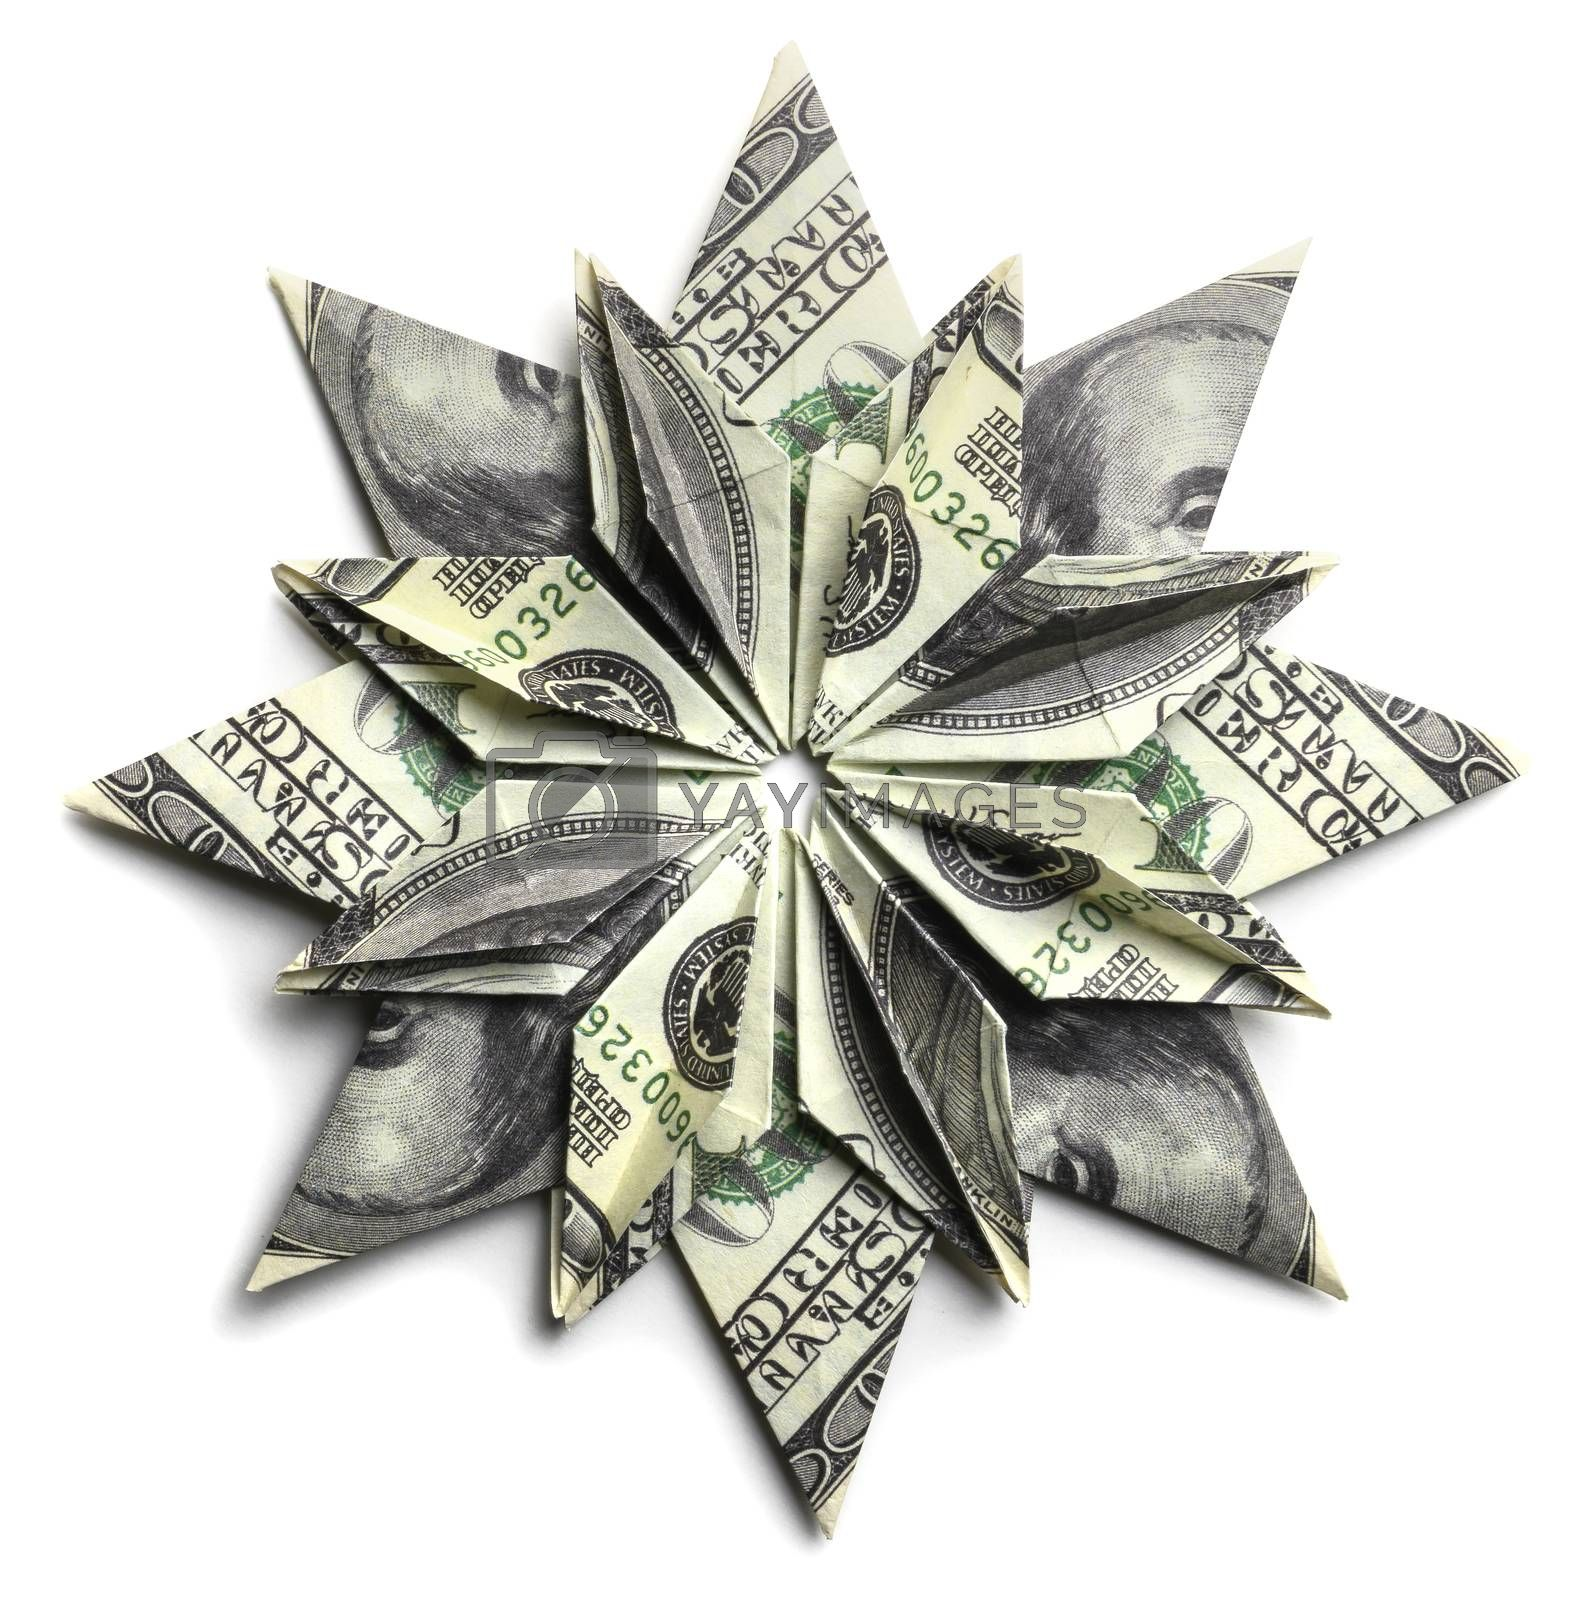 A 100 dollar bill in the shape of a snowflake on a white background.